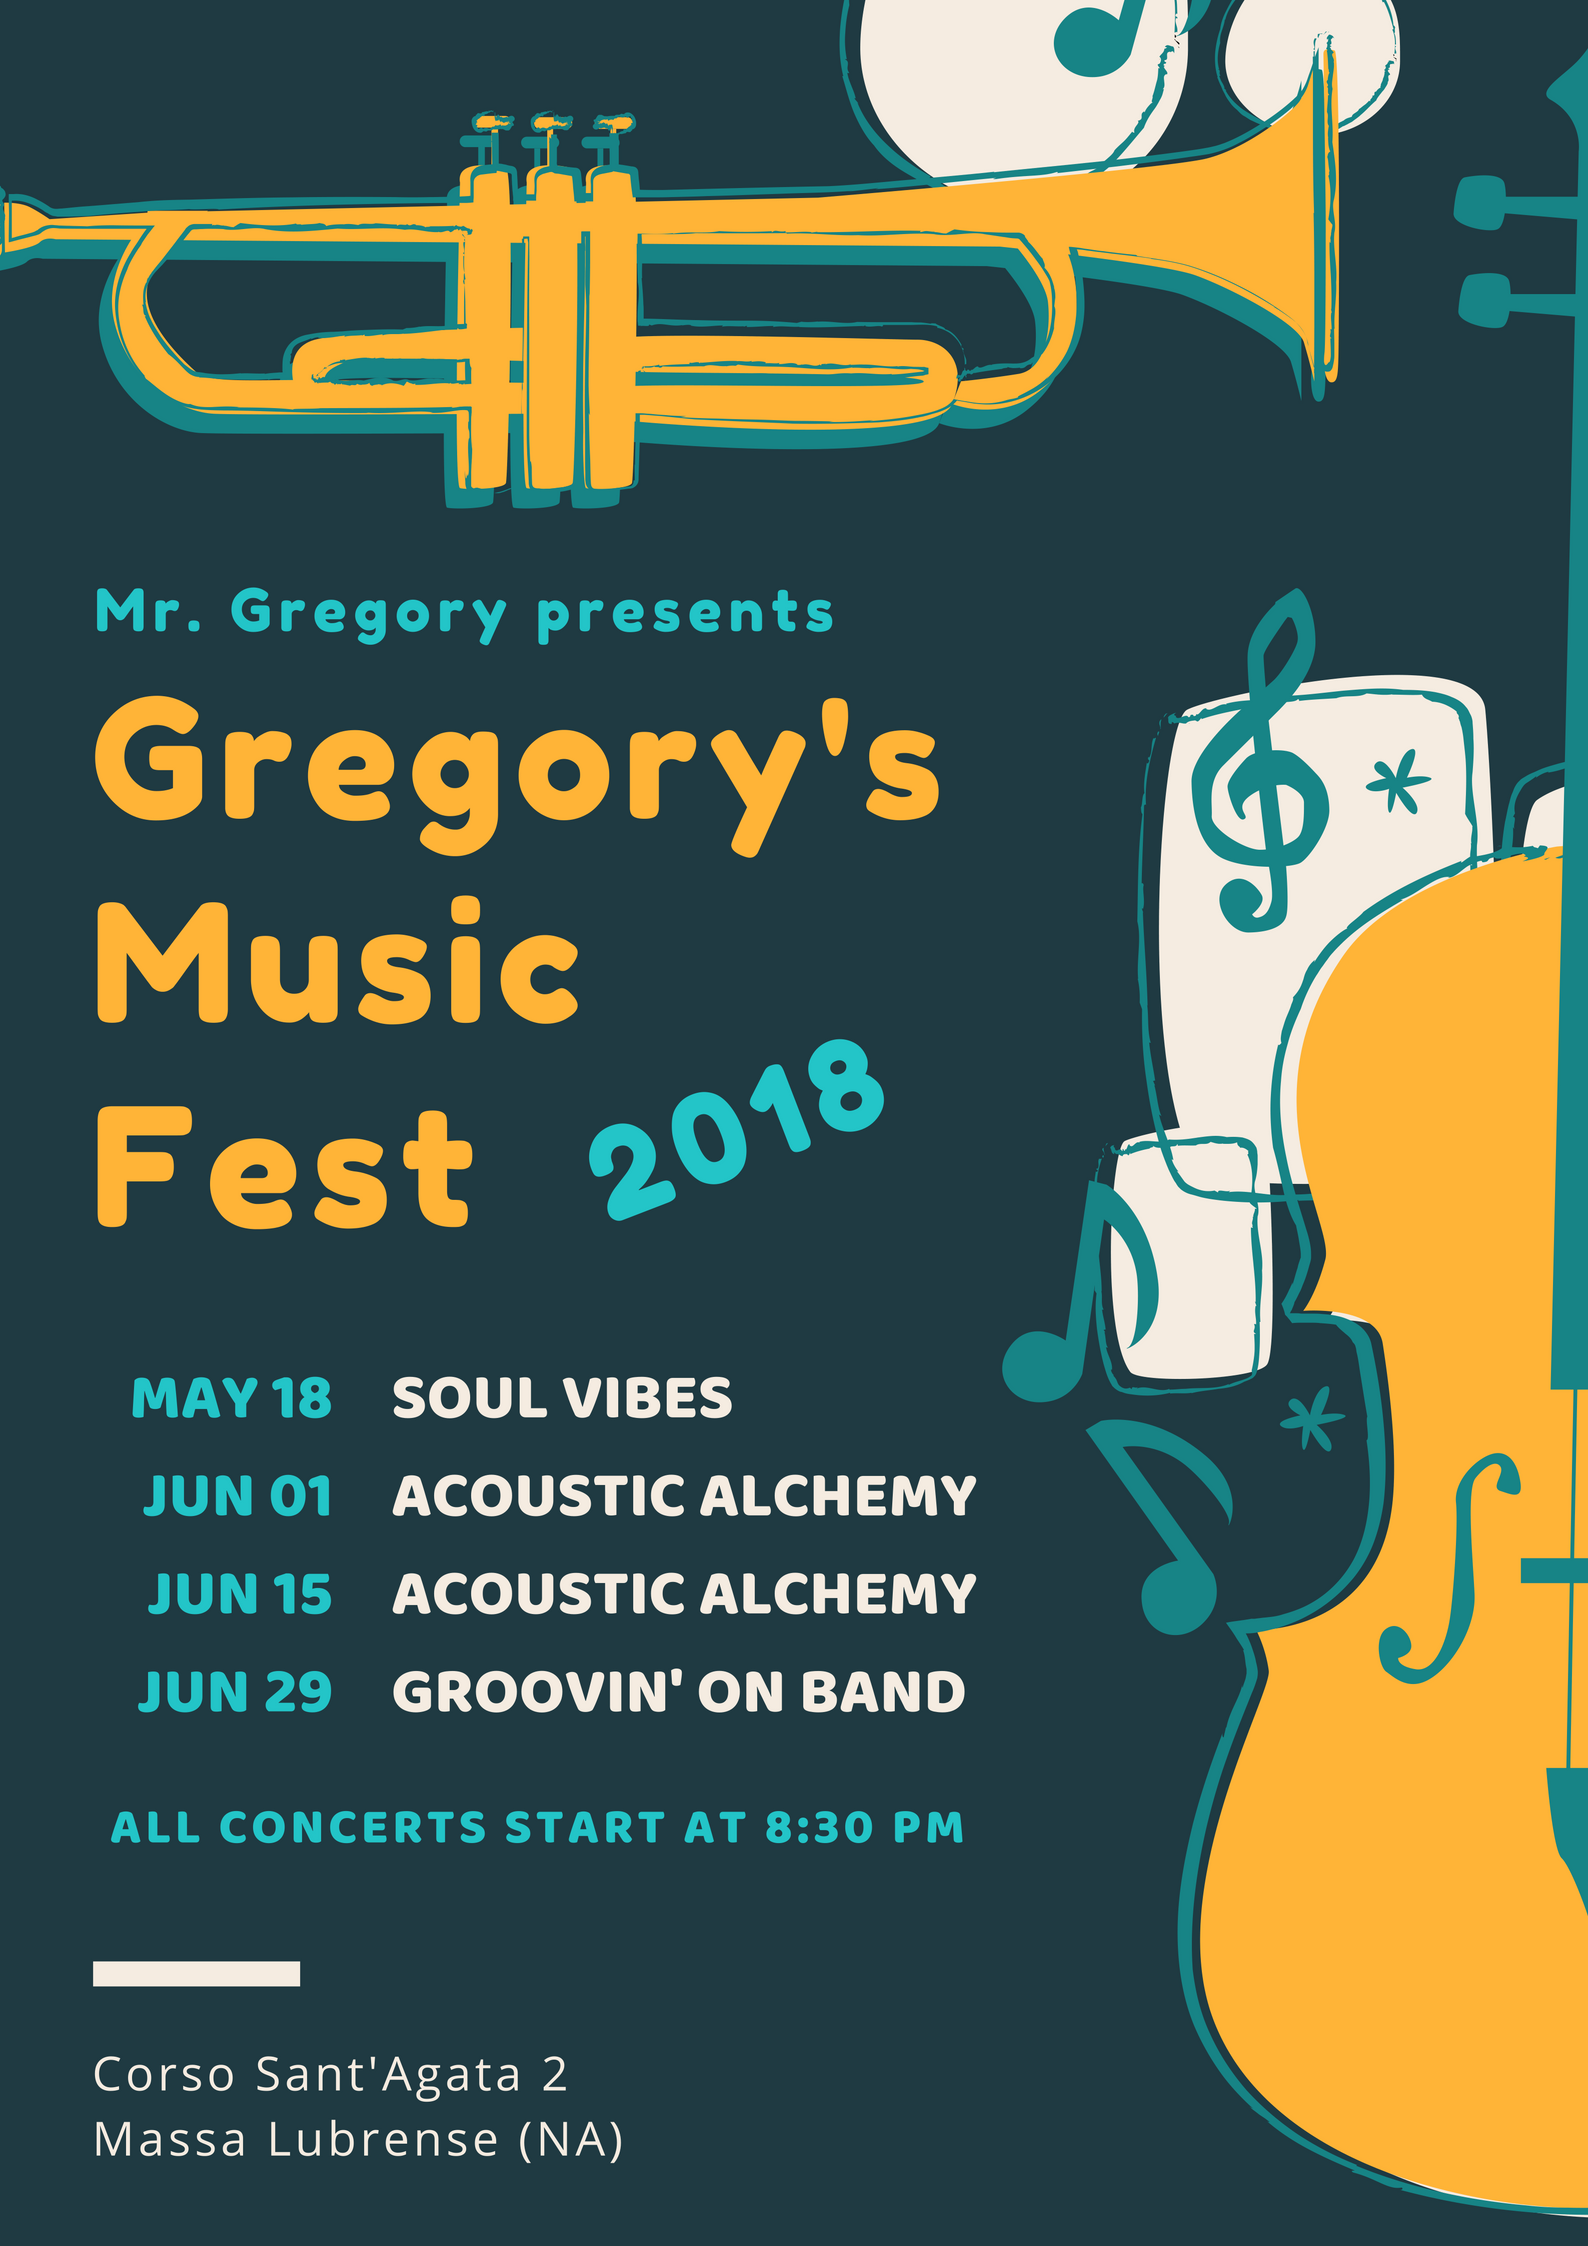 Gregory's Music Fest 2018 – Acoustic Alchemy